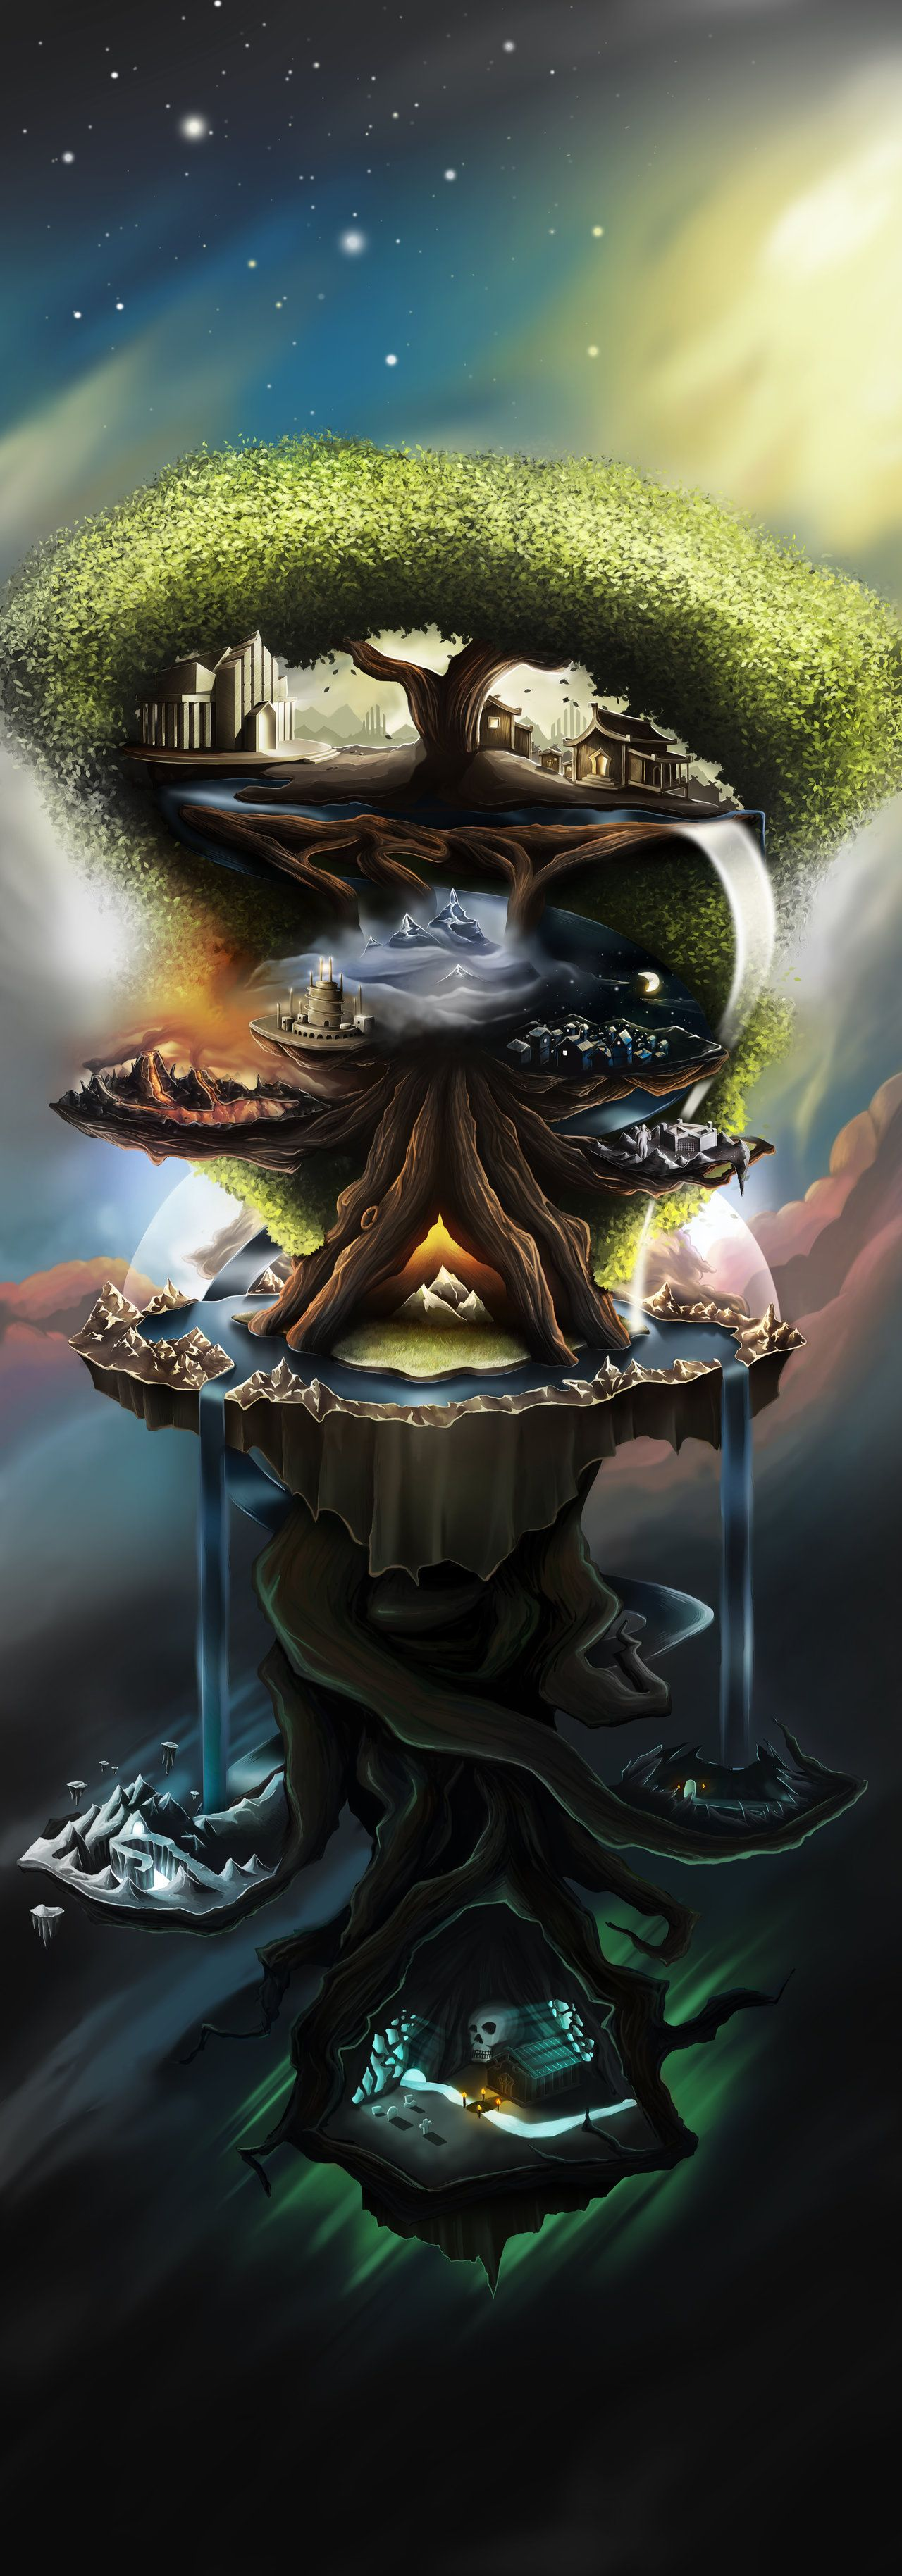 Images For Yggdrasil Tree Wallpaper Norse Myth Yggdrasil Tree Norse Mythology